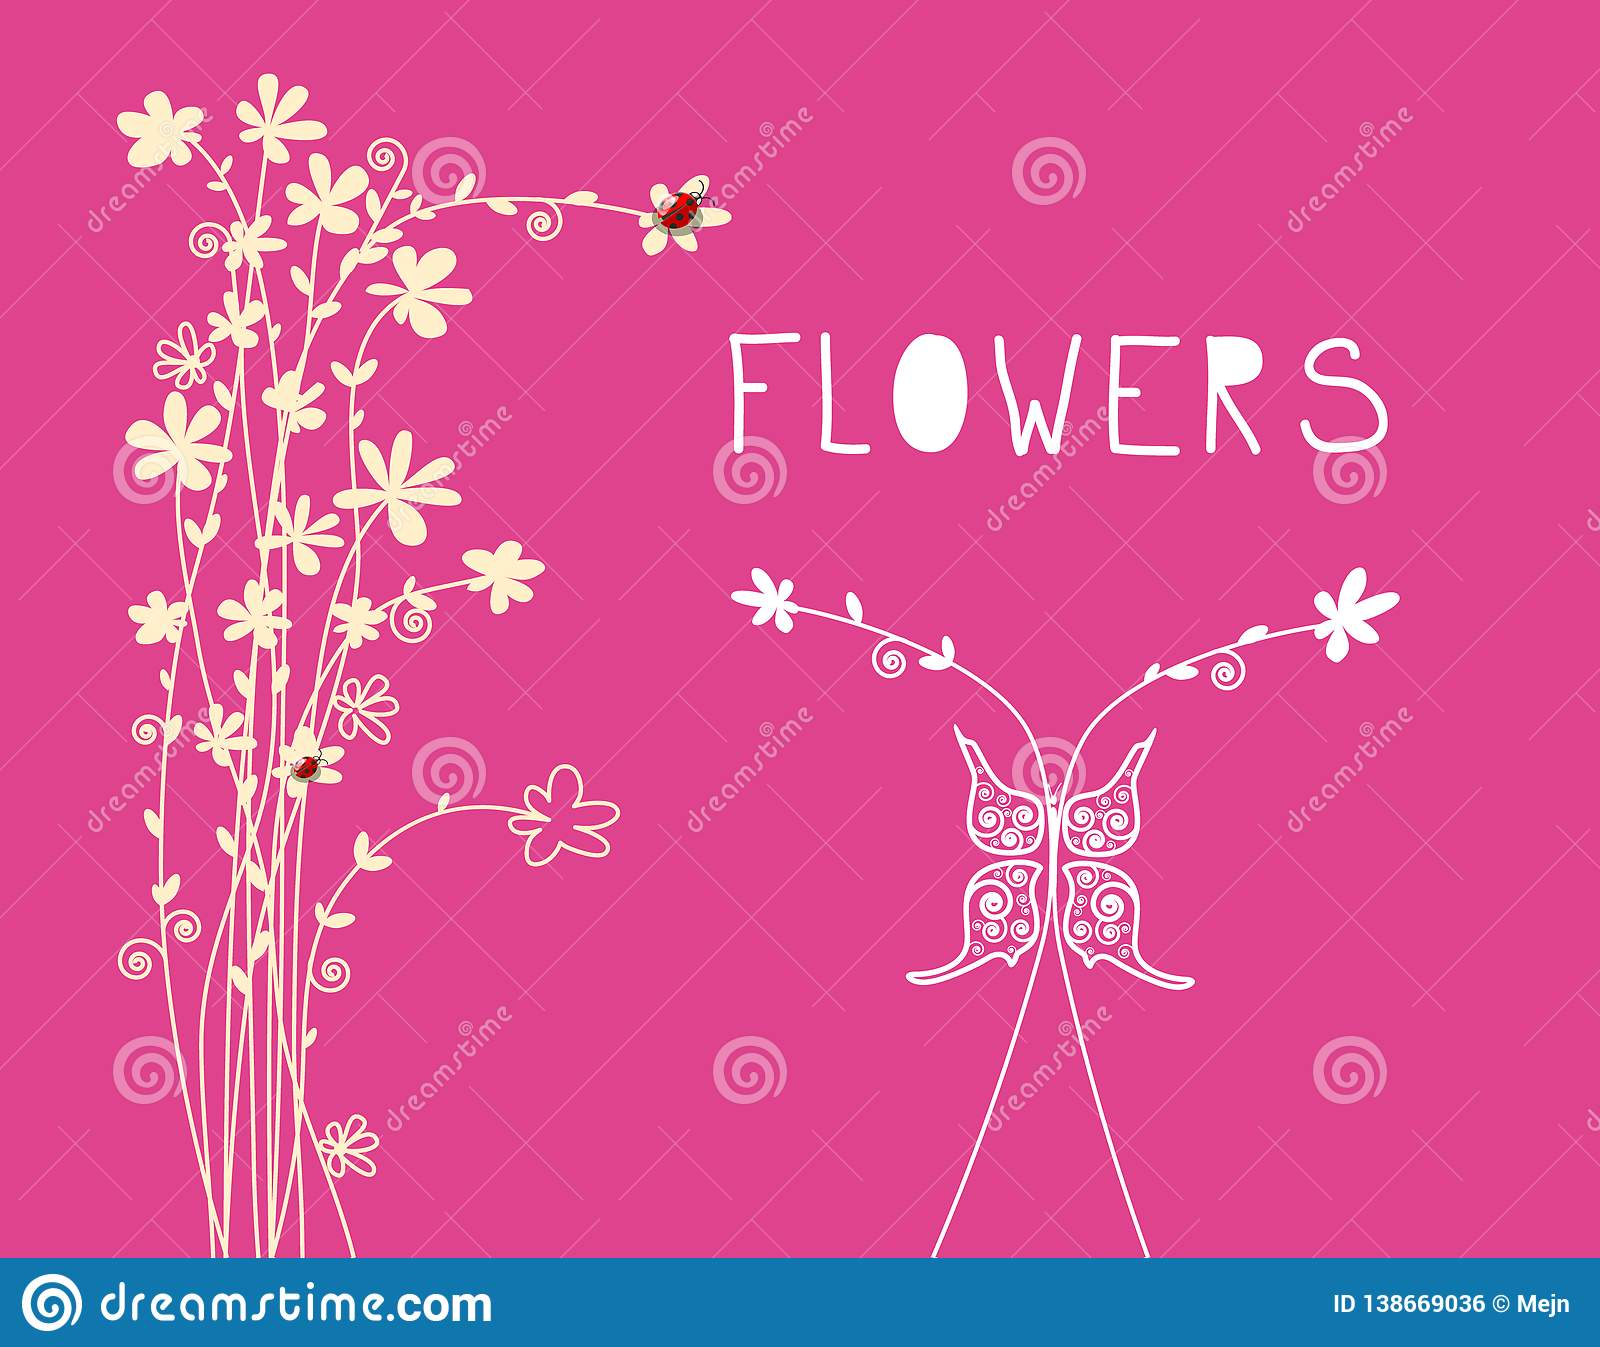 Floral Background With Flower Ornaments And Butterfly